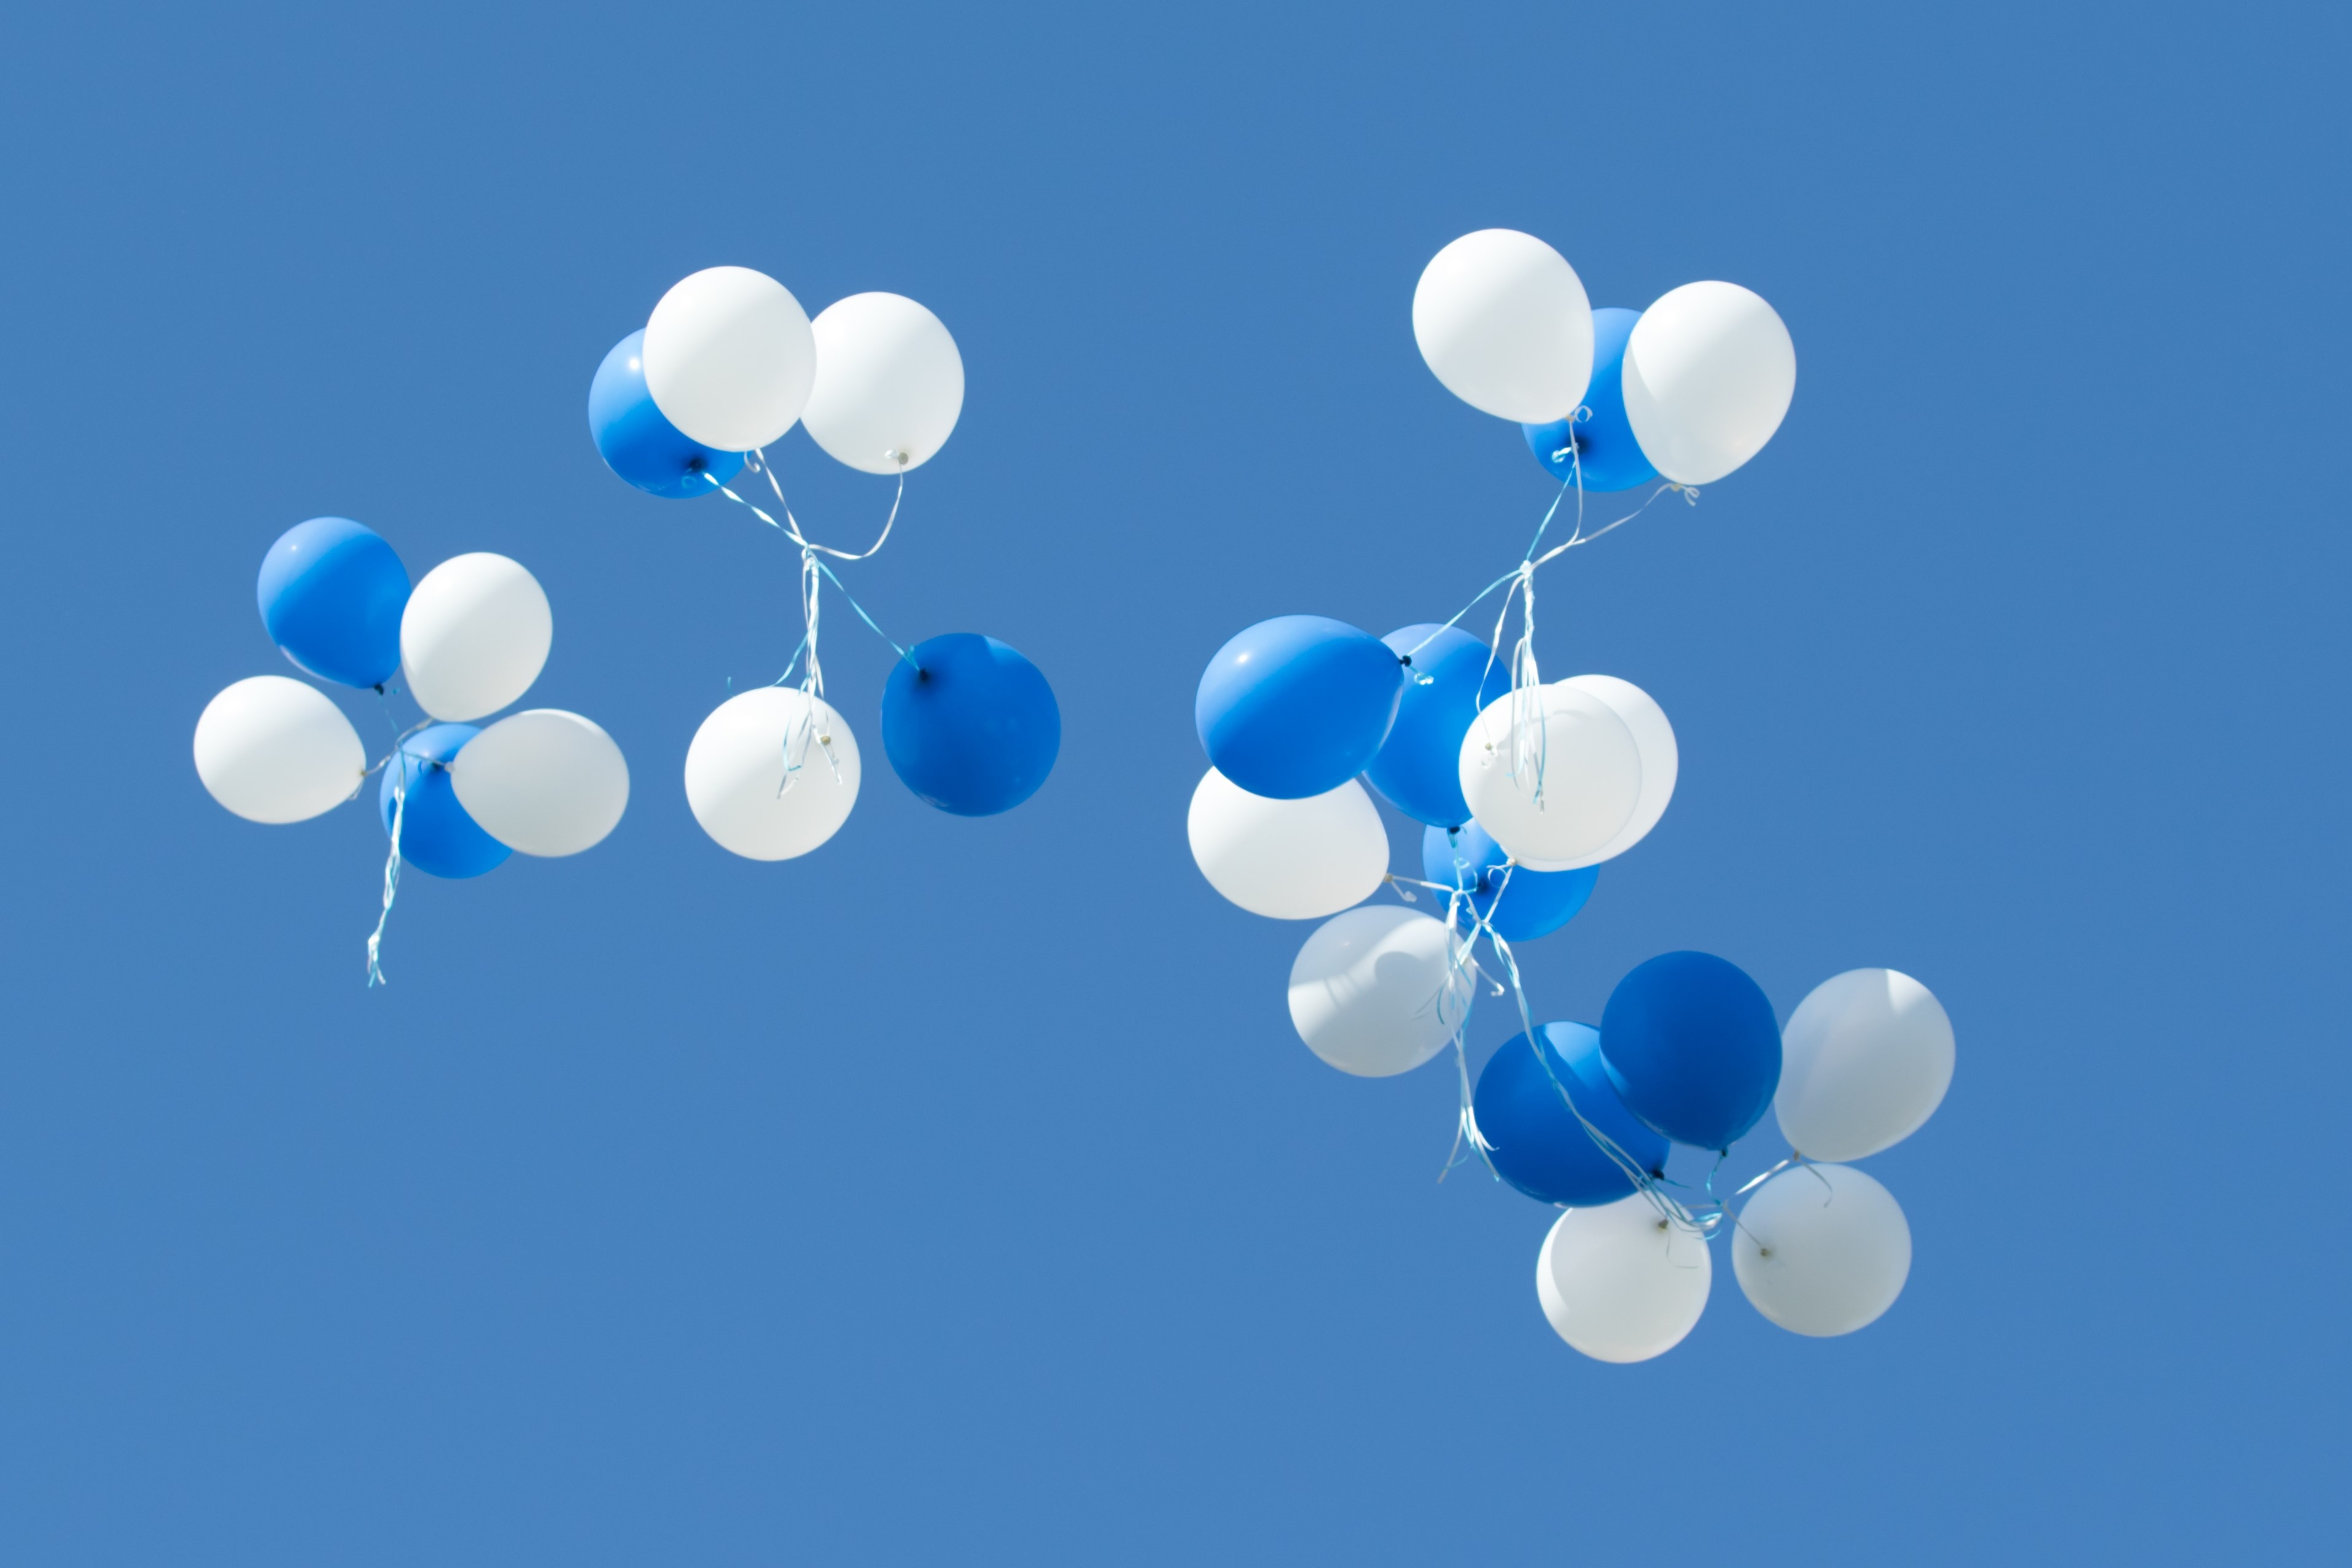 white and blue balloons in the sky